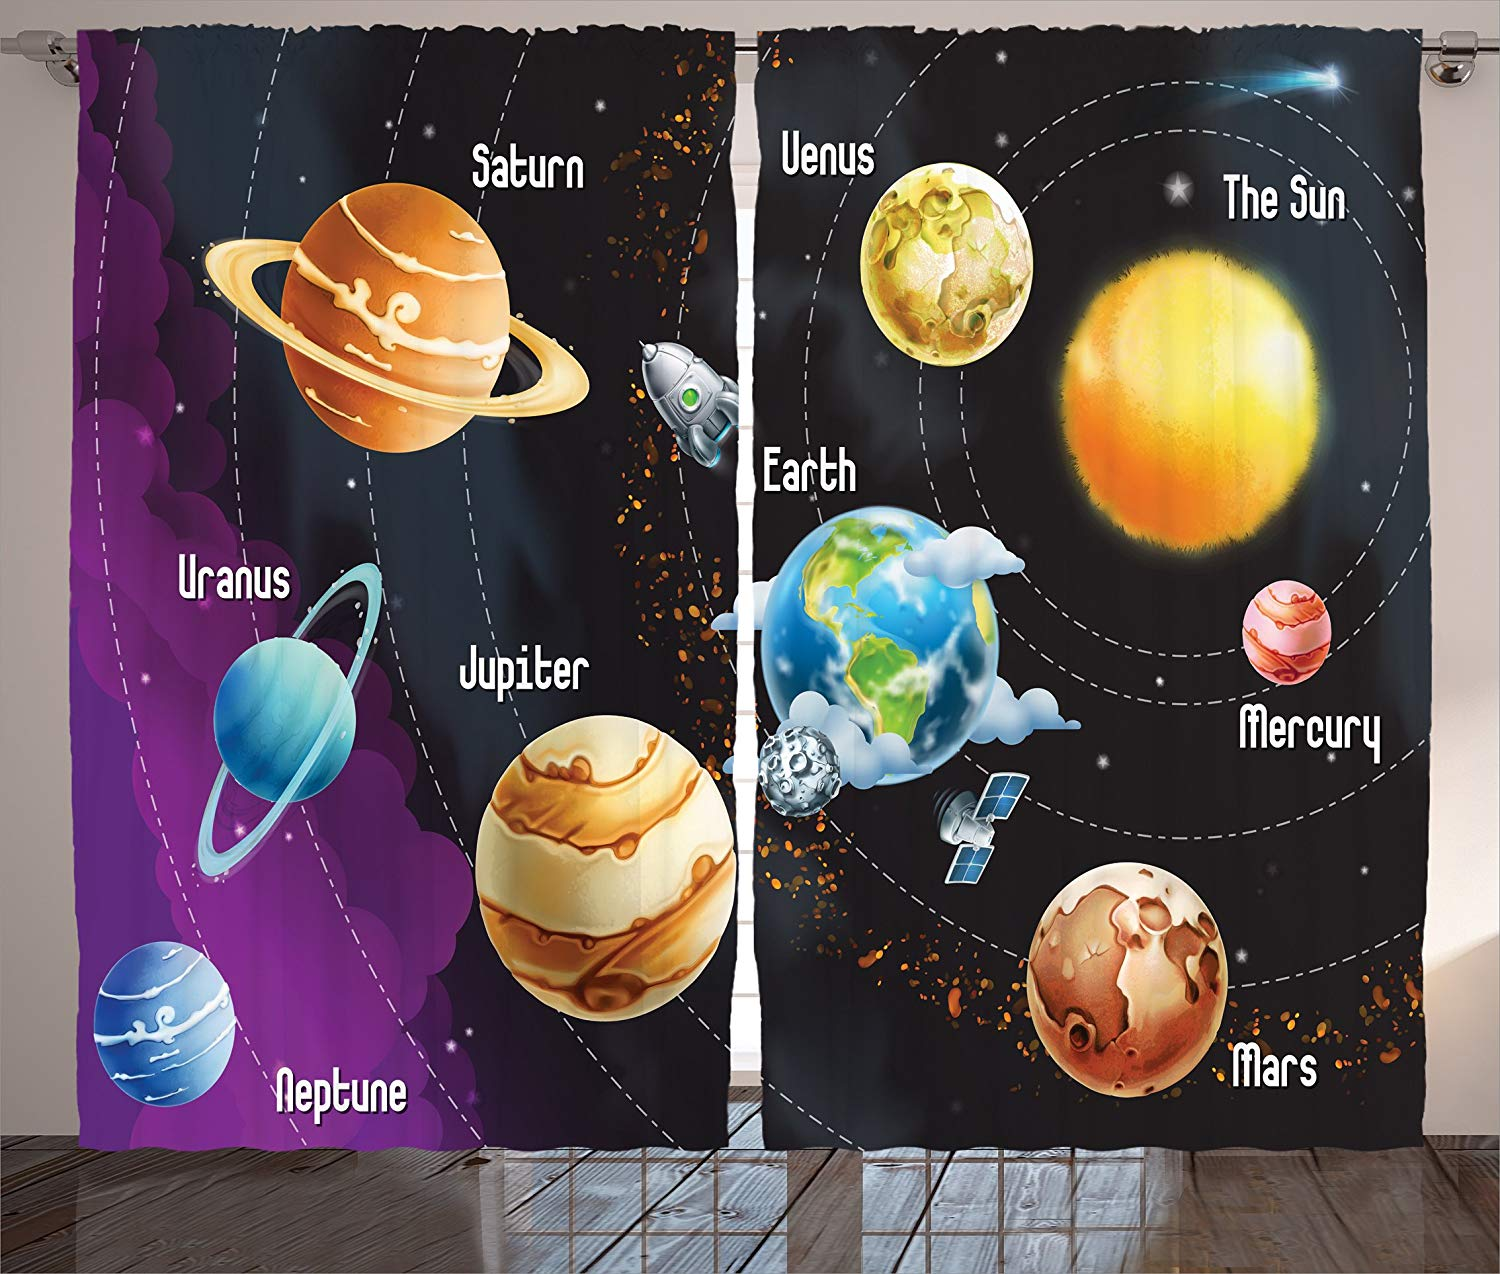 Outer Space Curtains Solar System Of Planets Milk Way Neptune Venus Mercury Sphere Horizontal Living Room Bedroom Decor